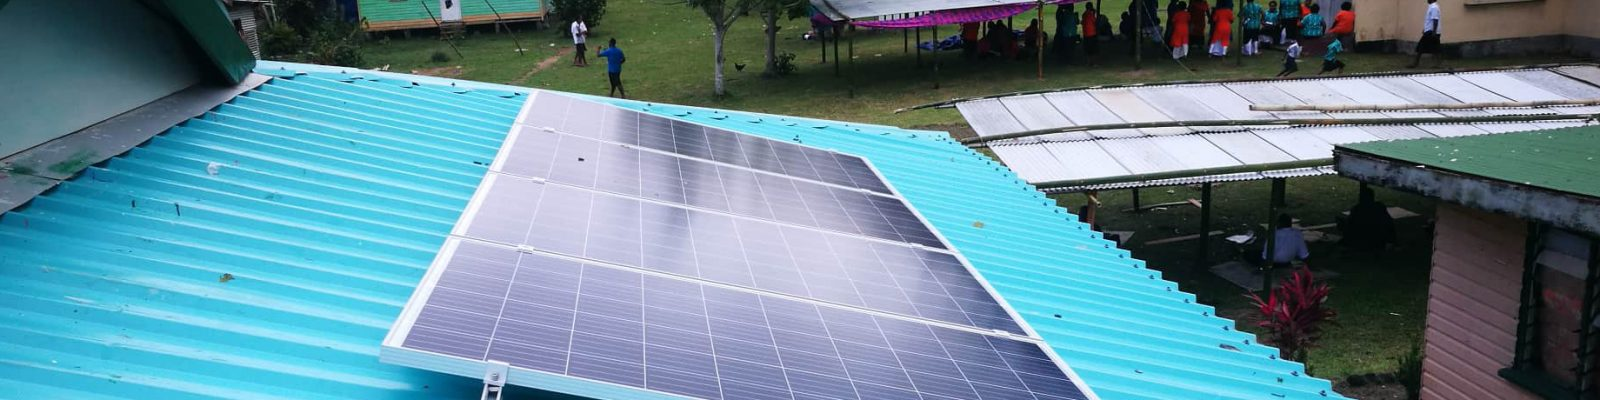 Offgrid Solar System Completed in Saqani